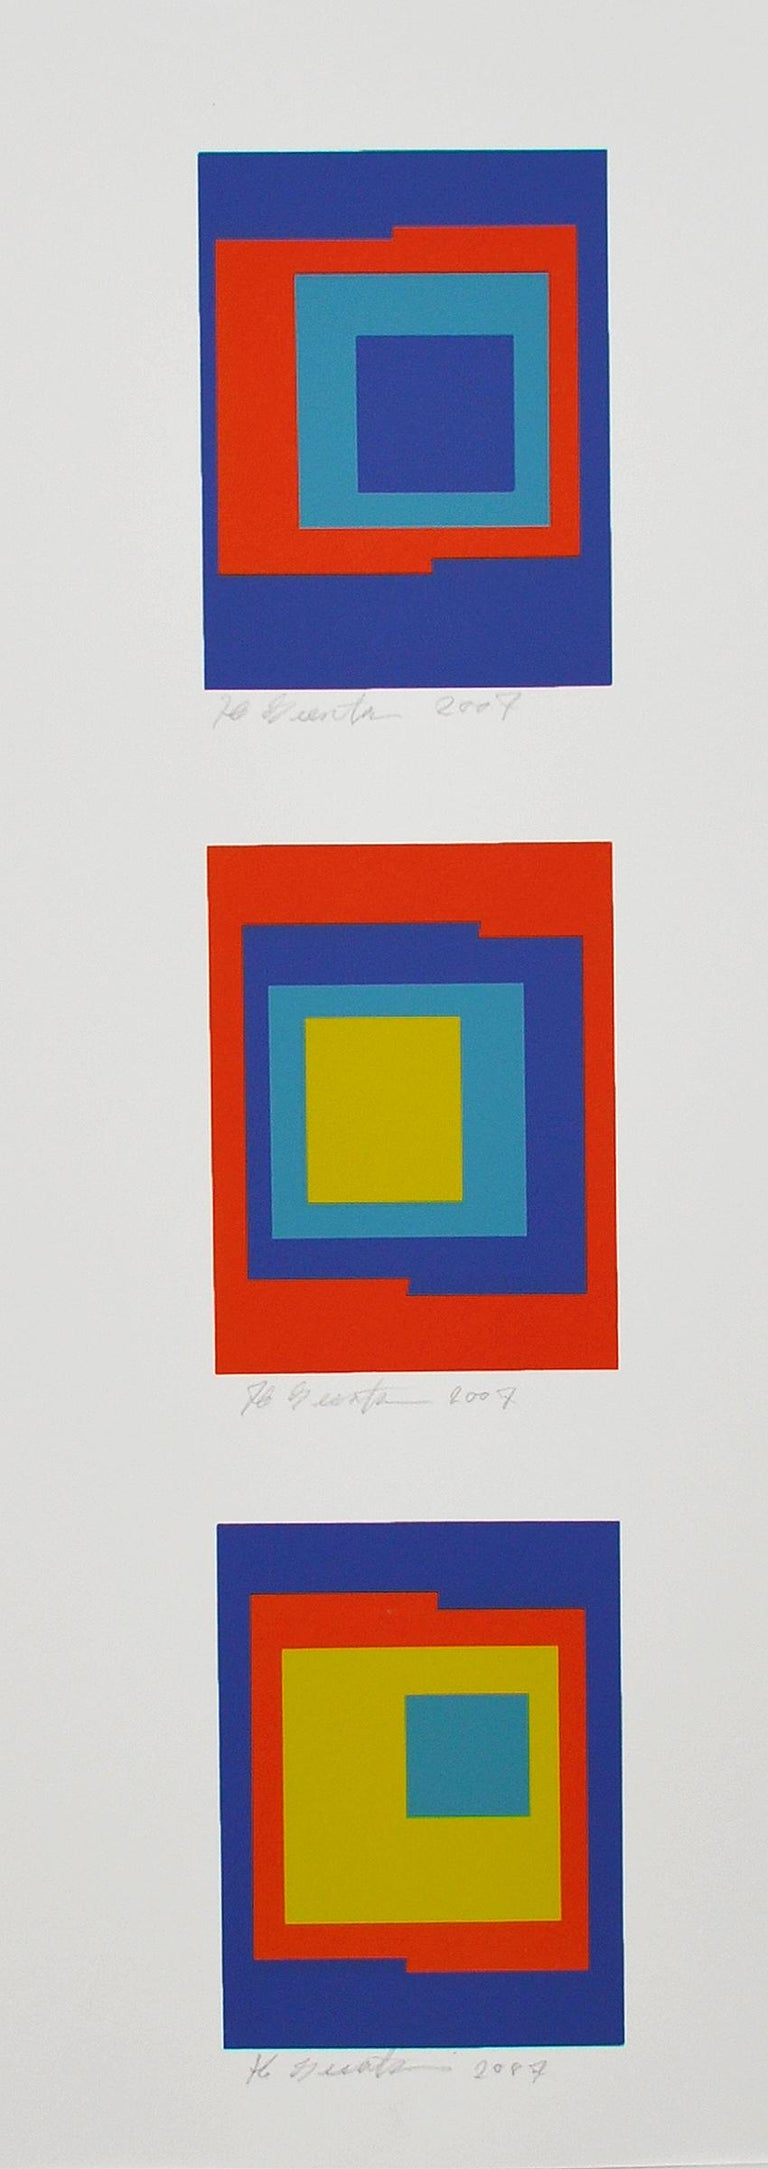 Screen Prints (3) by Ib Geertsen, signed, 2007. Ib Geertsen (1919-2009) worked with the concrete art, where the line, shape, color and movement are the content.  Occupation: sculptor, painter, graphic artist, color architect  Geertsens works are art